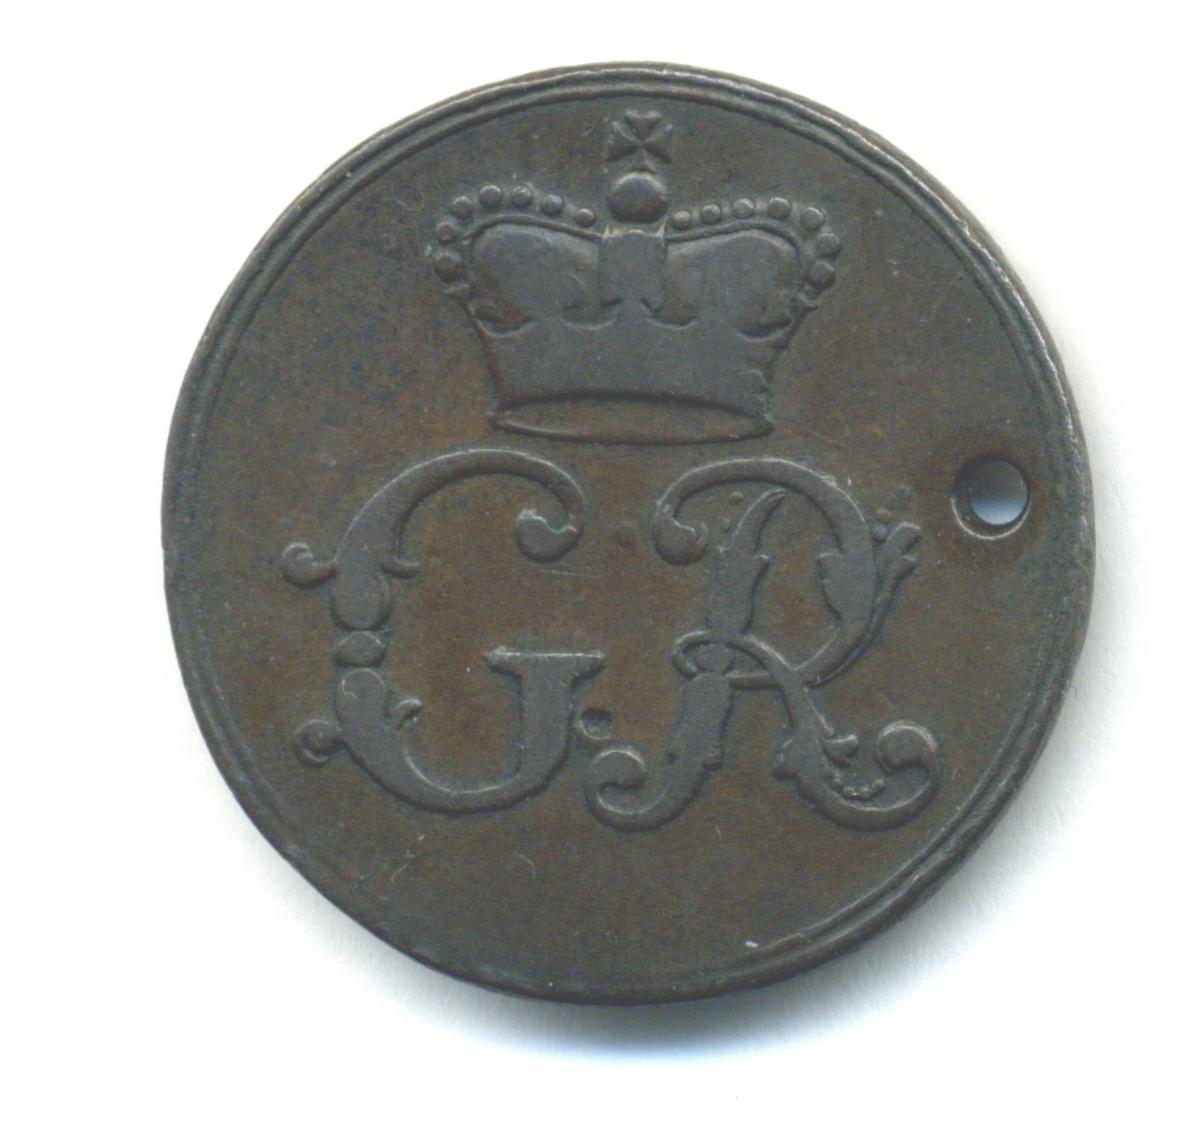 Chelsea, The King's Private Roads, bronze pass, 1731